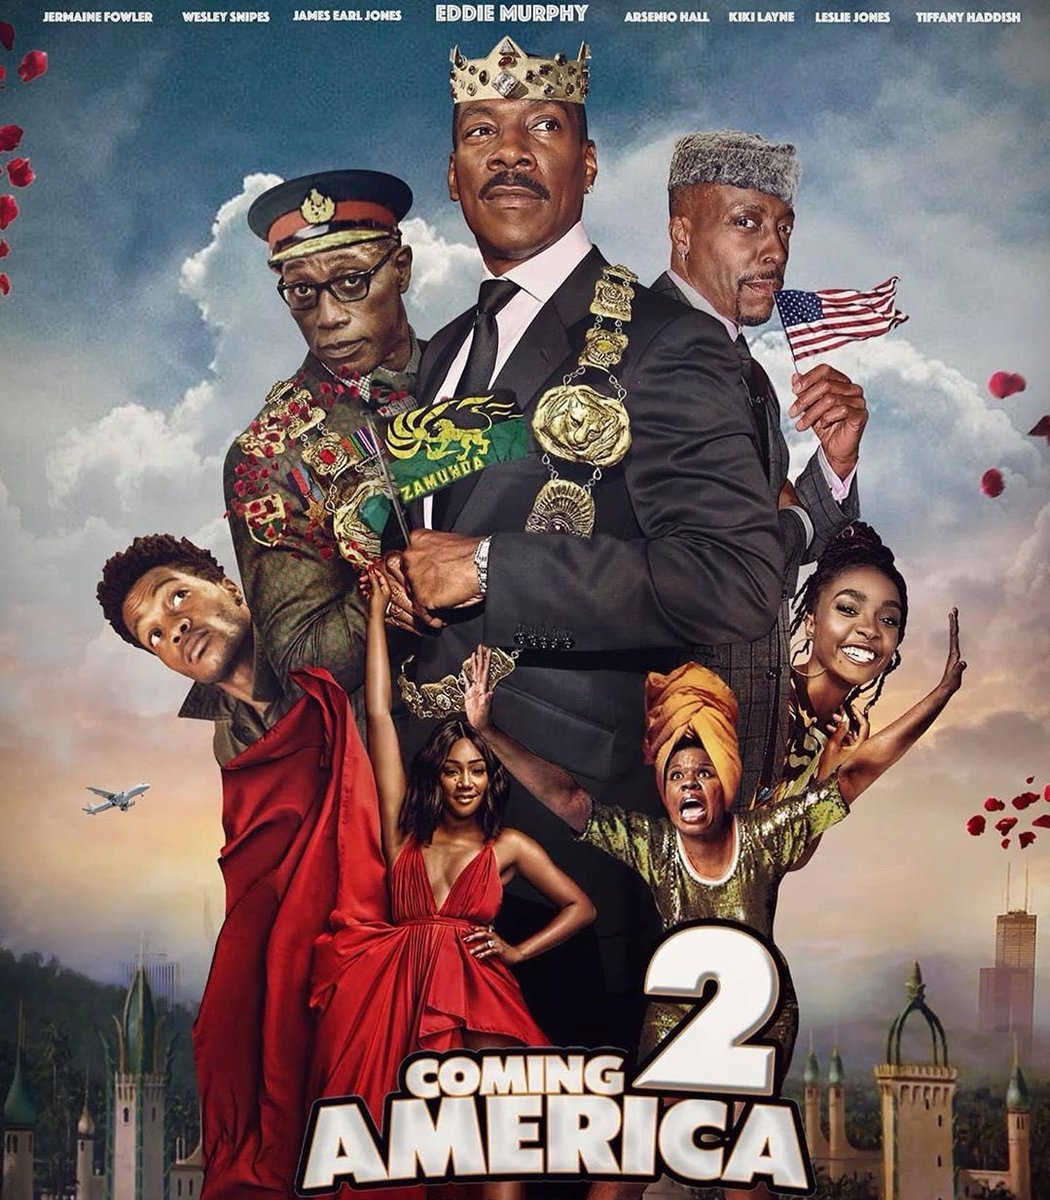 So excited for #ComingToAmerica2 !!! The wardrobe is absolutely gorgeous 😍 😍😍